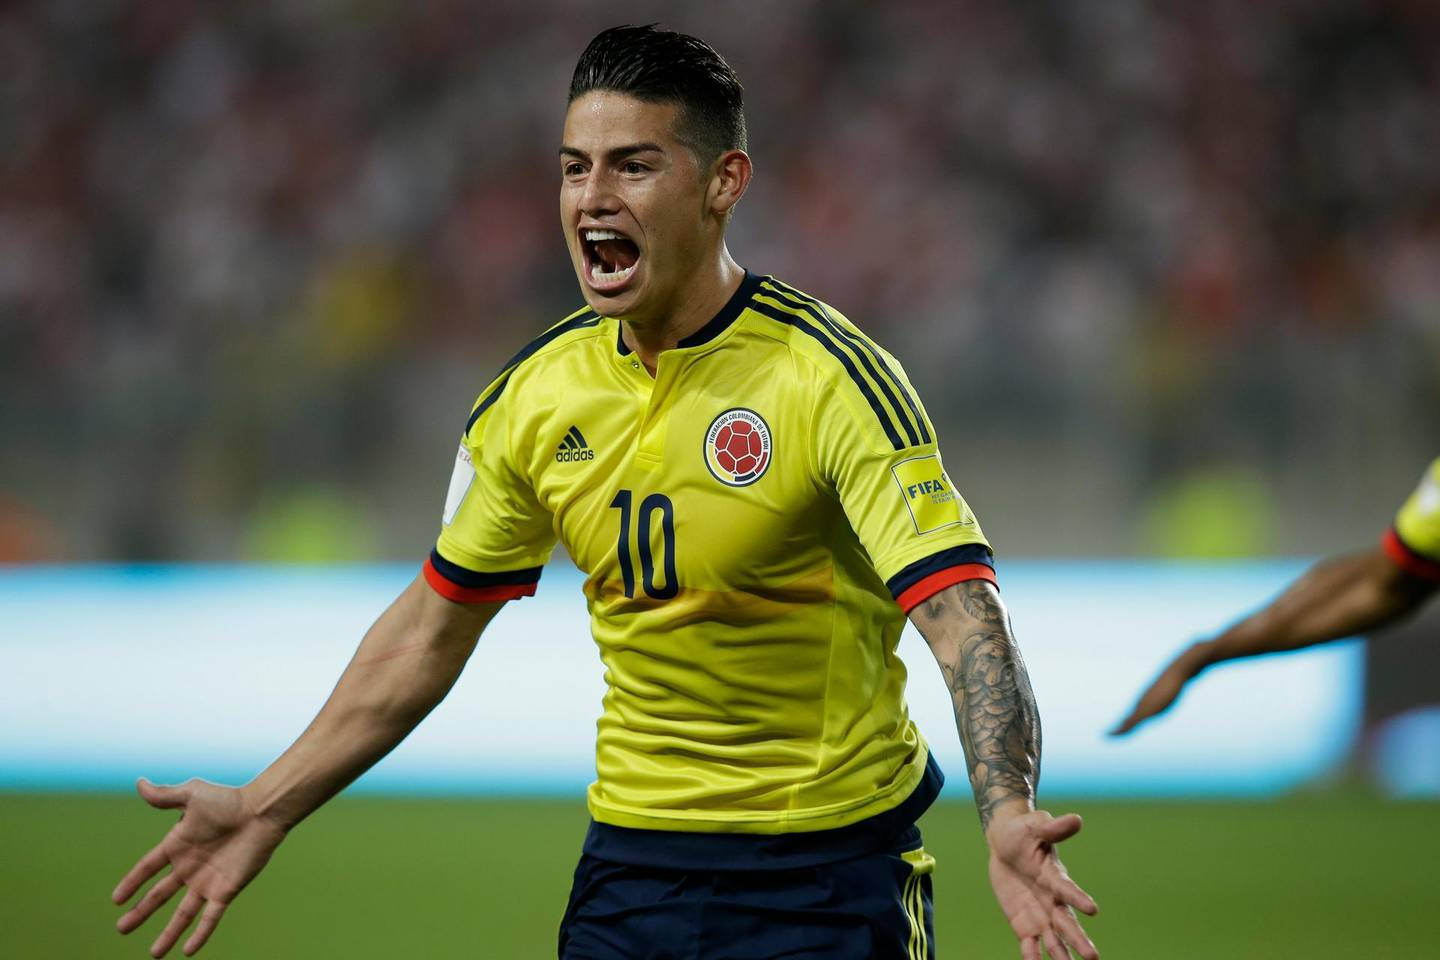 FILE - In this Tuesday, Oct. 10, 2017 filer, Colombia's James Rodriguez celebrates after scoring against Peru during a 2018 World Cup qualifying soccer match in Lima, Peru.(AP Photo/Martin Mejia, File)